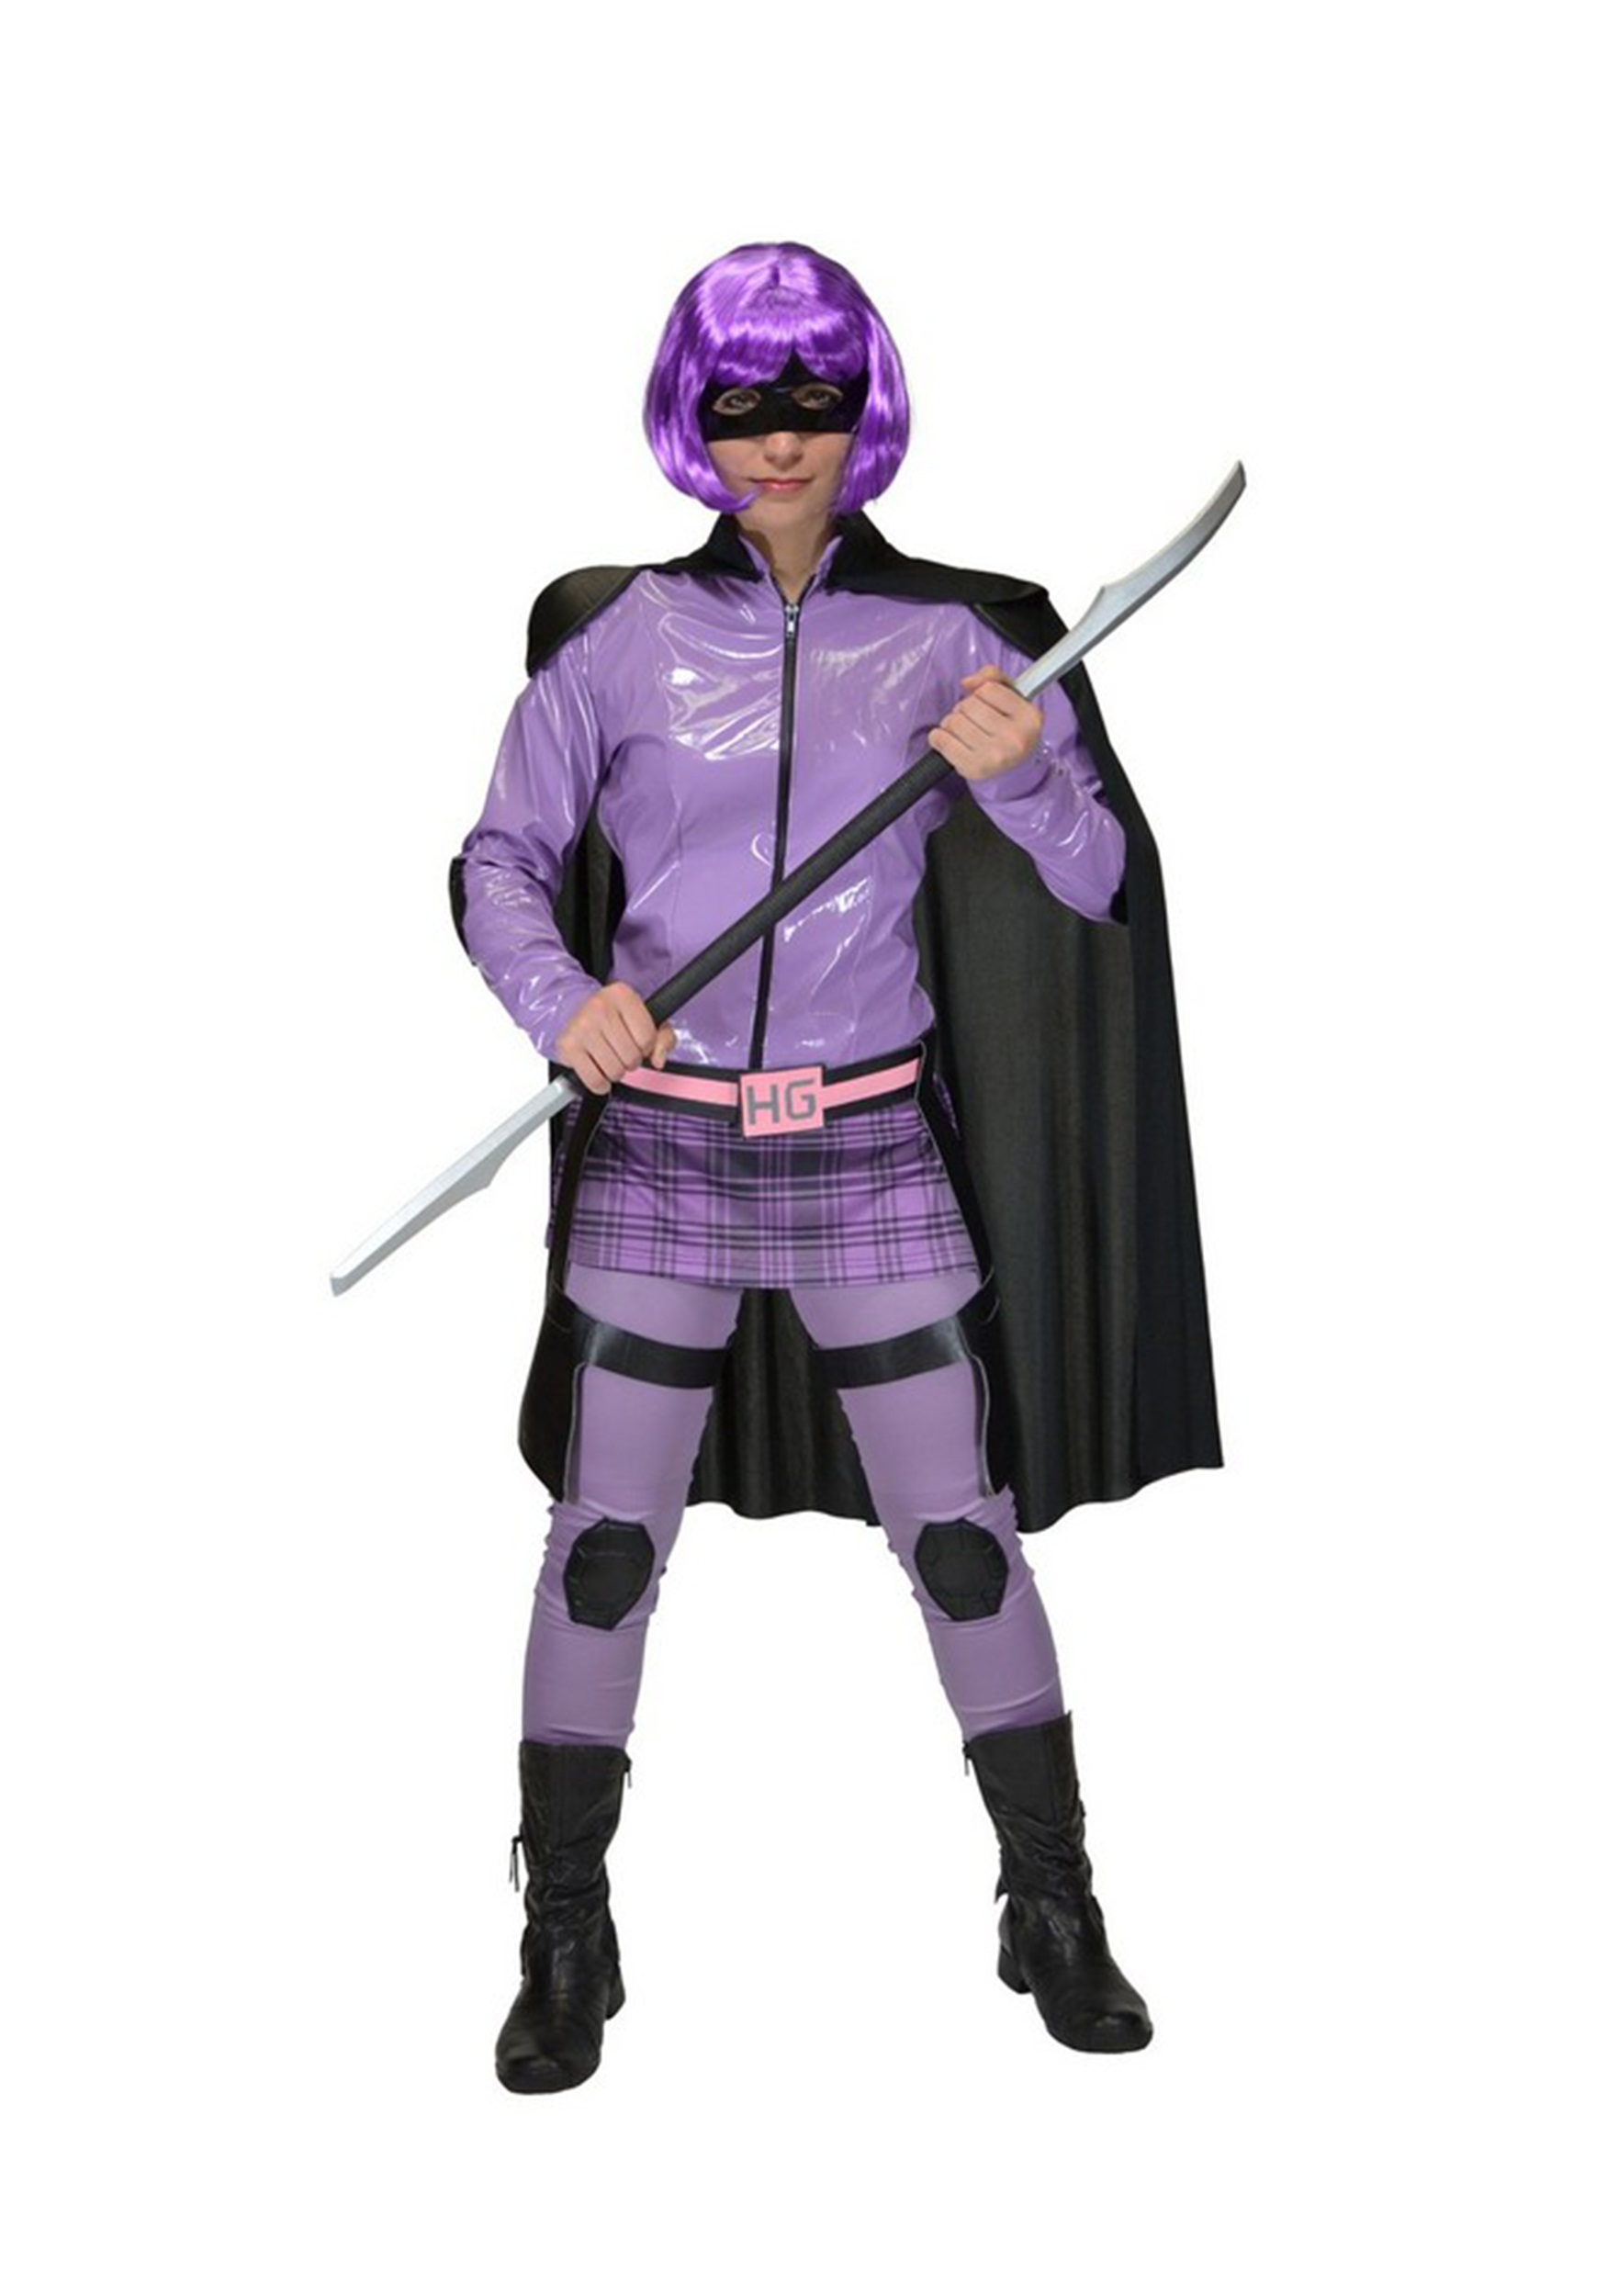 Hit girl costume kick ass, gretchen carlson hot and tight